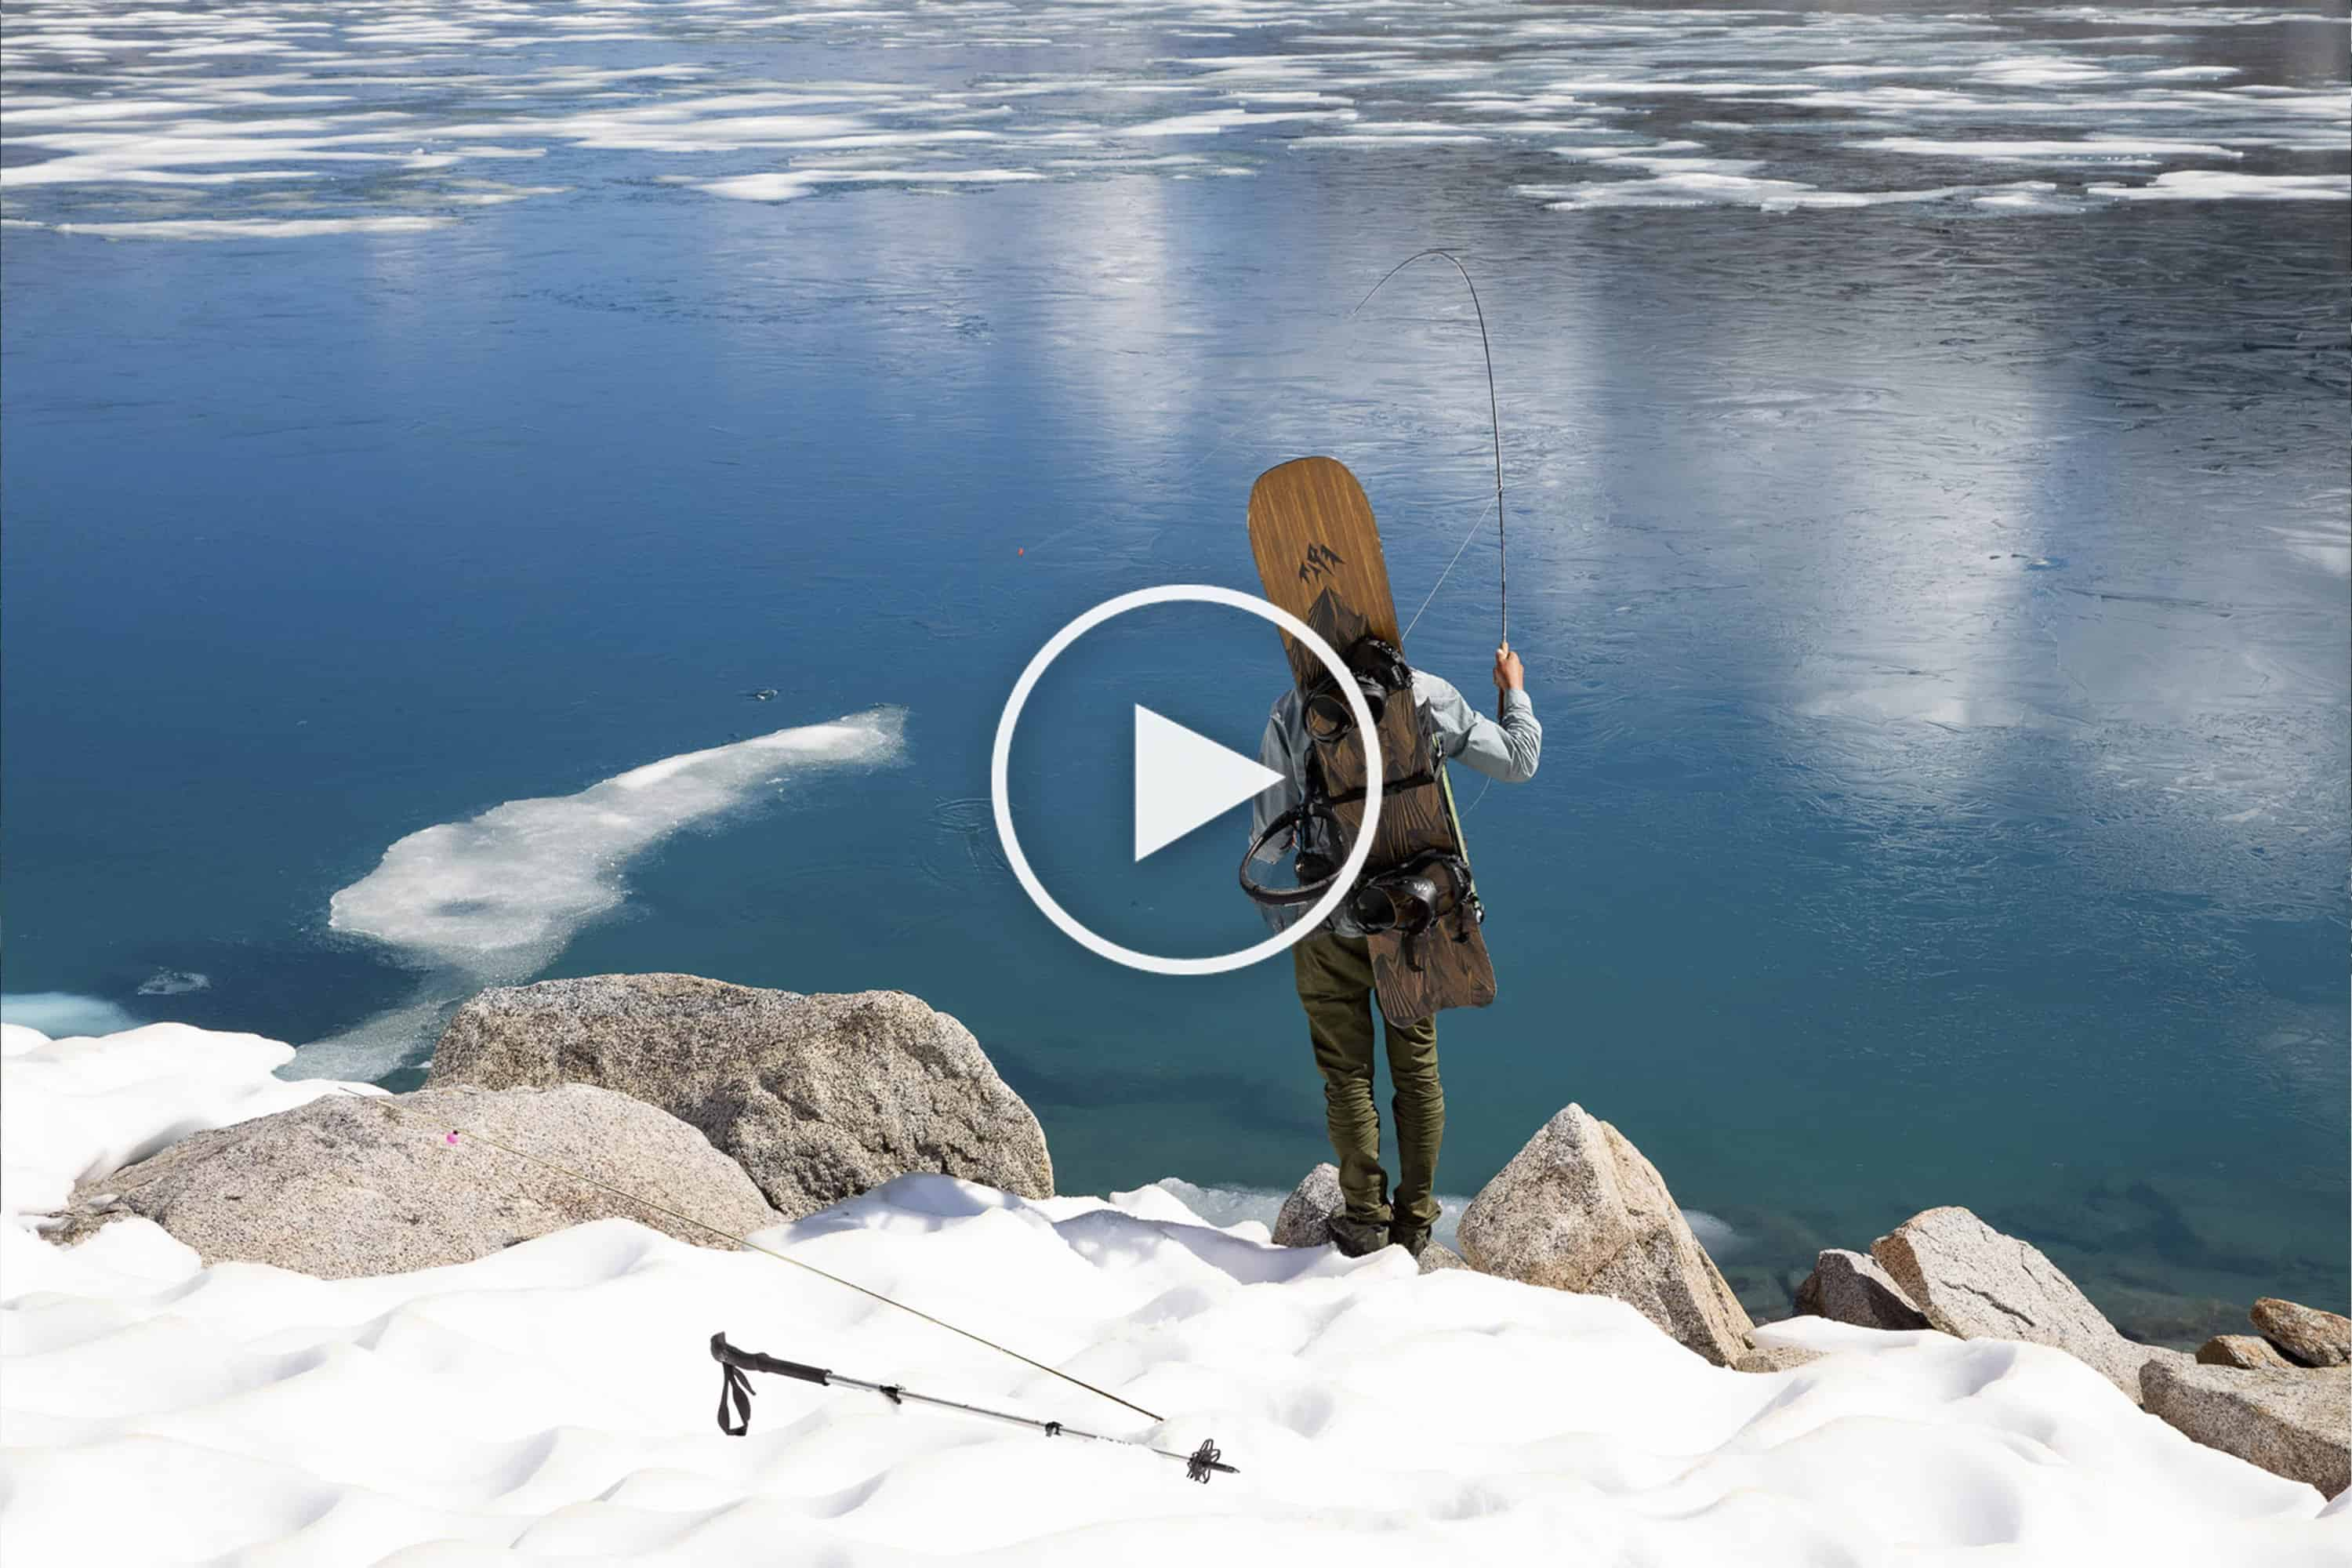 Blue Water High Cast cast & carve - summer fishing and snowboarding in the high